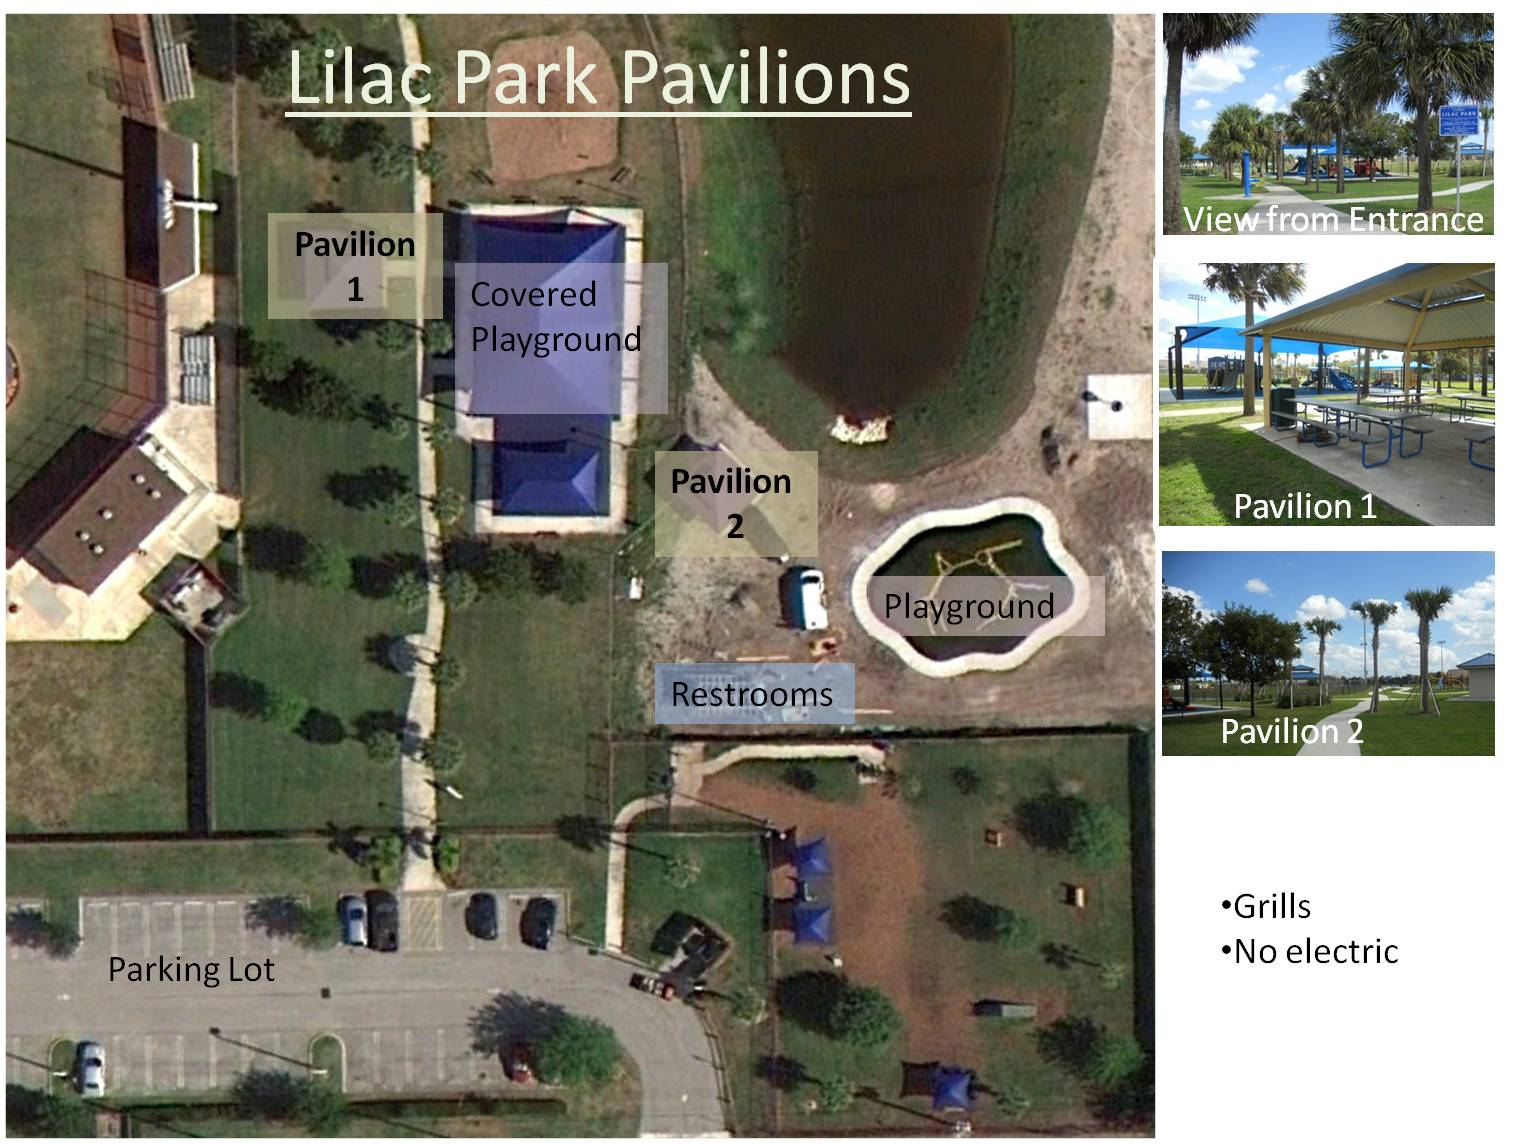 Arial map of Lilac Park and pavilions.